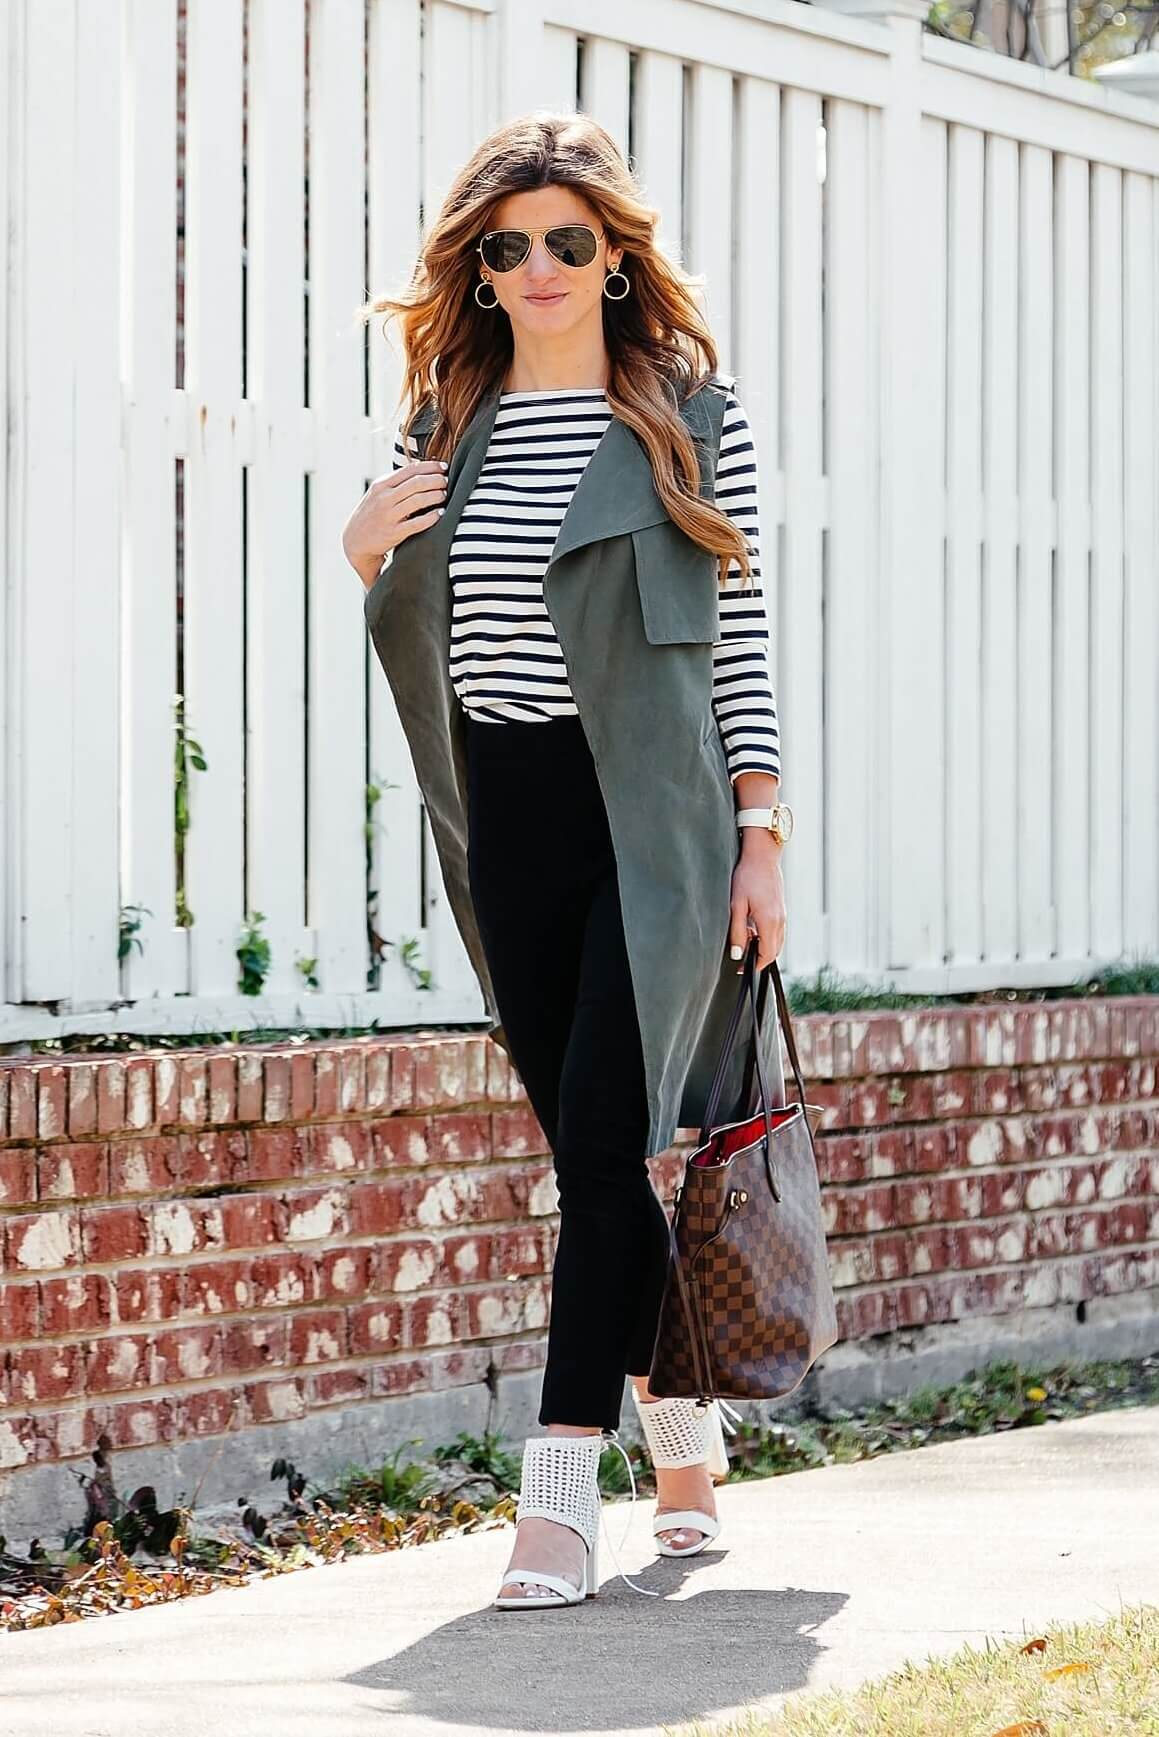 green trench vest, striped tee, black pants, business casual outfit idea